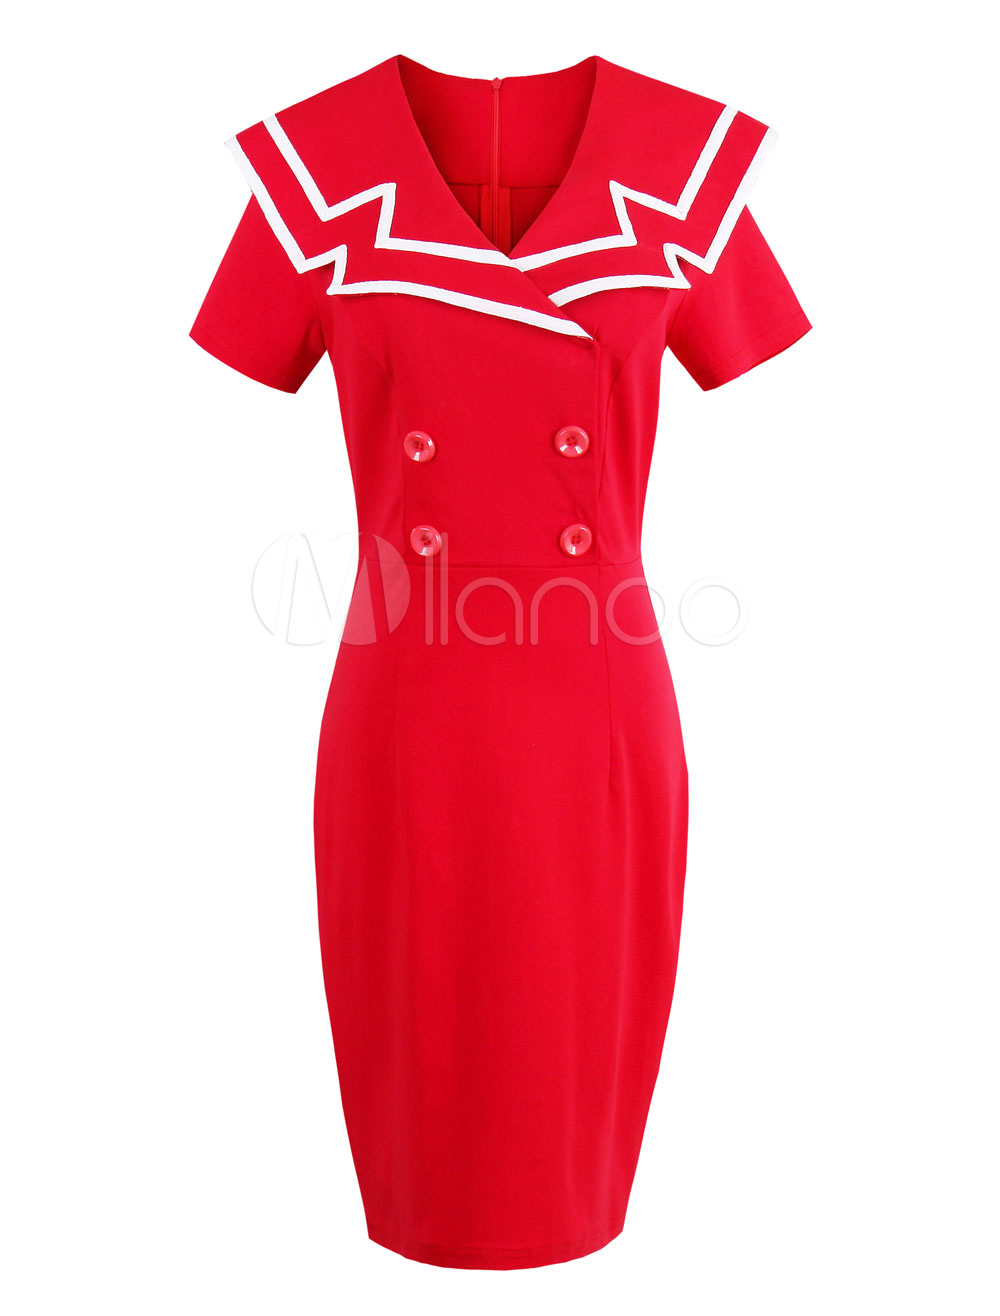 Women Bodycon Dress Red Short Sleeve Double Breasted Vintage Dresses (Women\\'s Clothing) photo